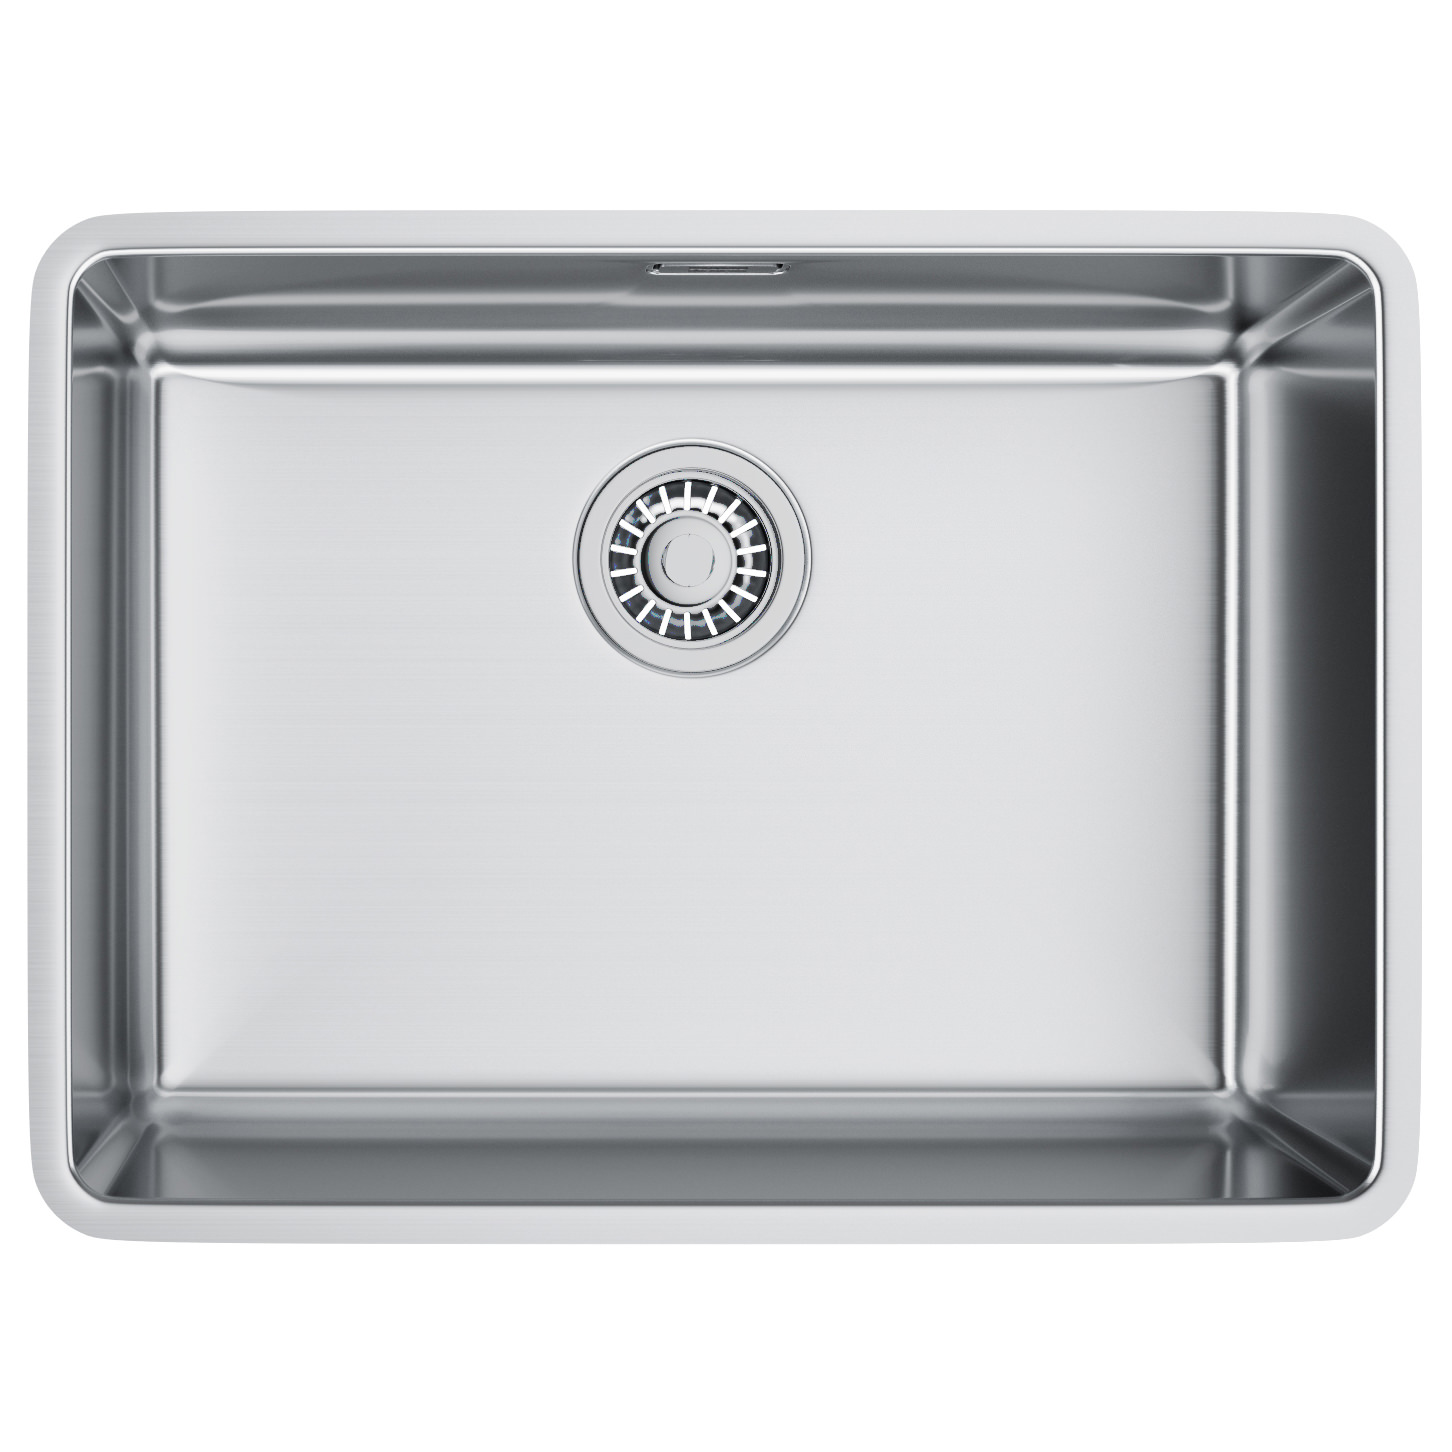 Franke Kubus KBX 110 55 Stainless Steel Undermount Kitchen Sink ...